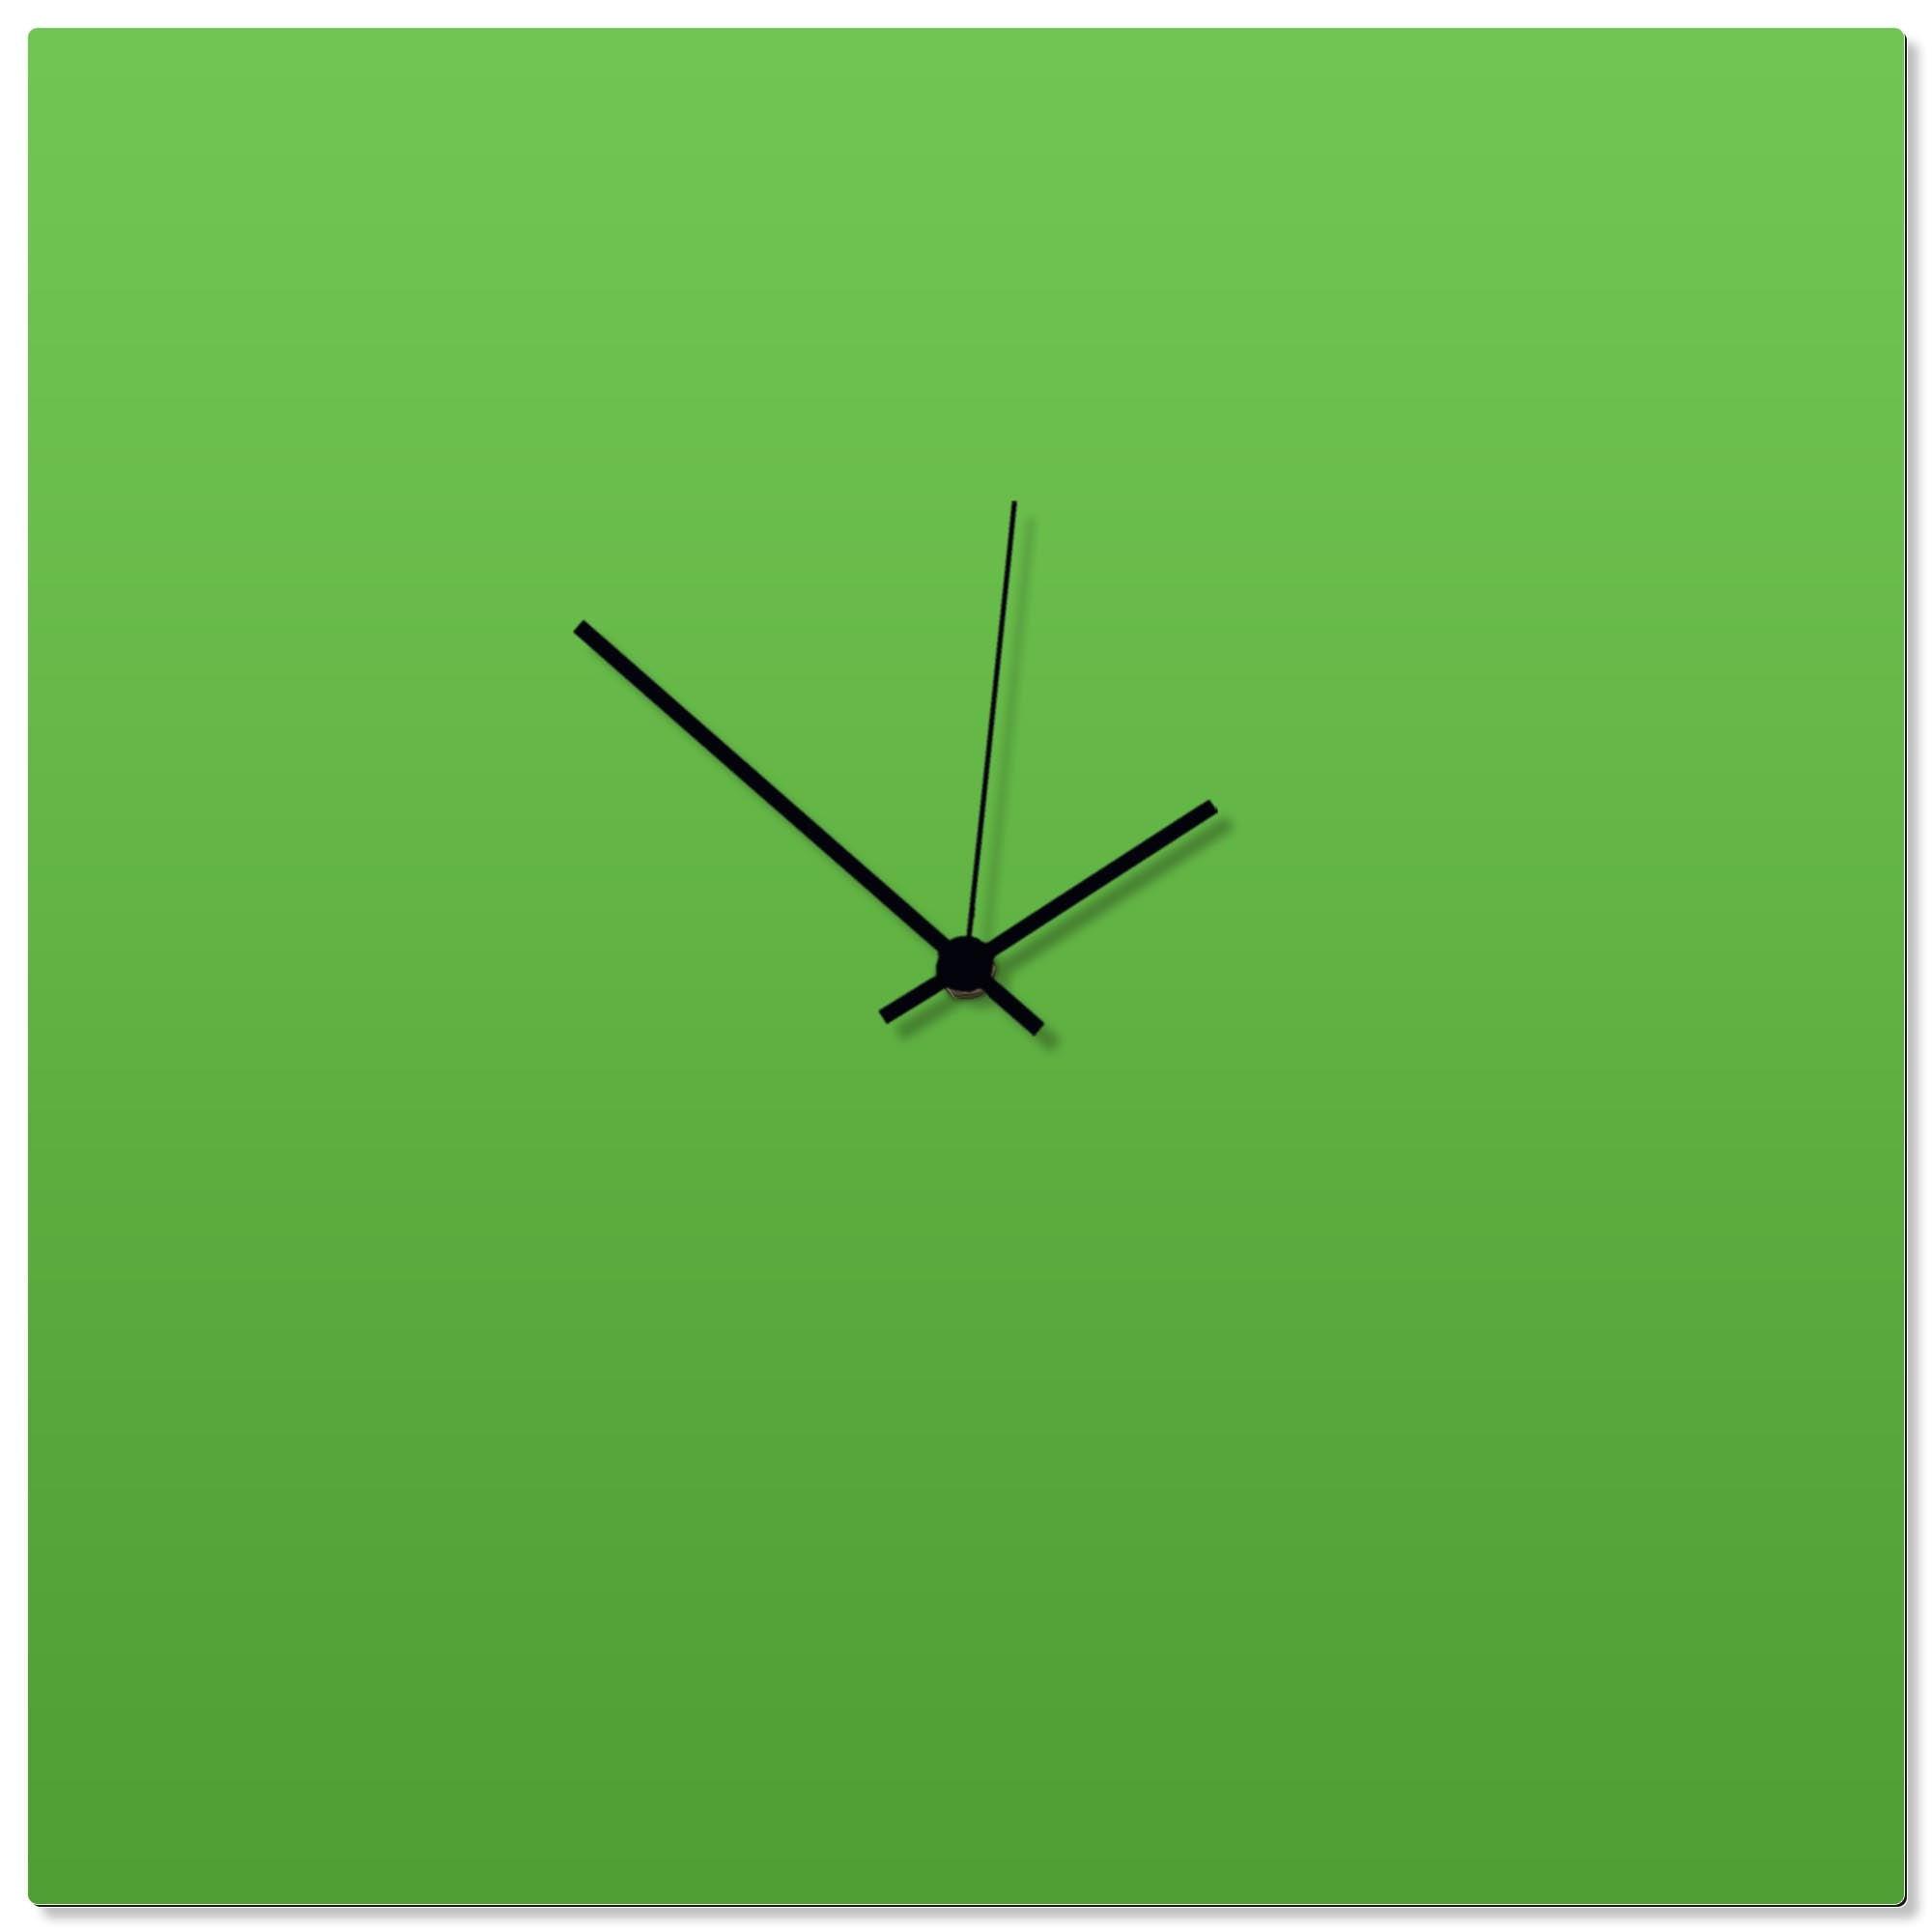 Greenout Black Square Clock Large by Adam Schwoeppe - Contemporary Clock on Aluminum Polymetal